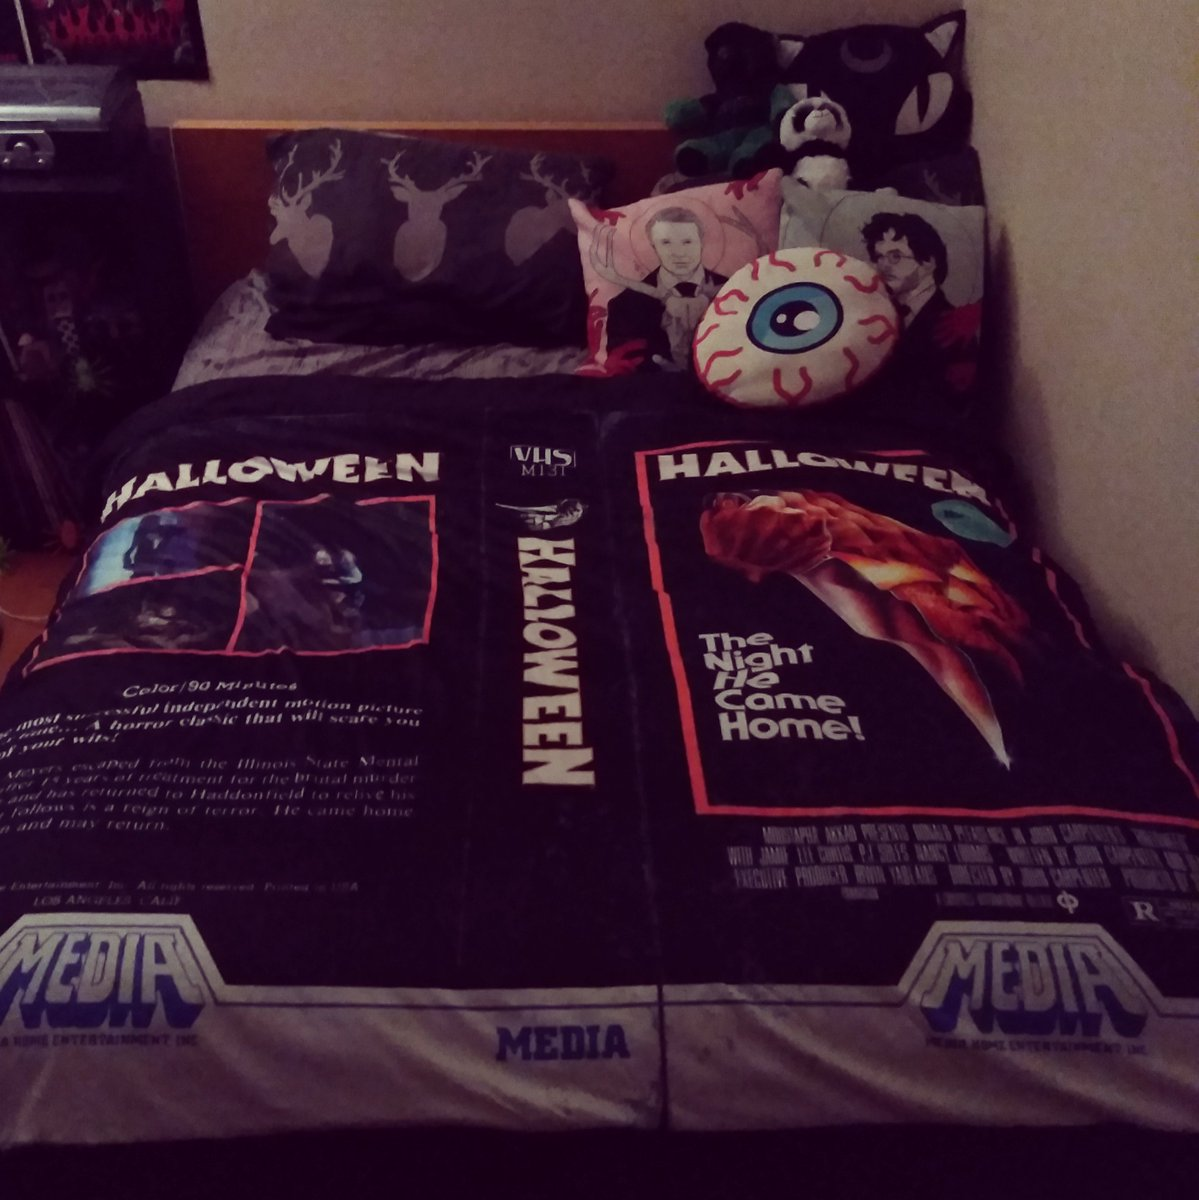 The Night It Came Home  My #Halloween VHS blanket arrived! I will sleep well tonight knowing @jamieleecurtis is watching over me. <br>http://pic.twitter.com/UyGgMxouq9